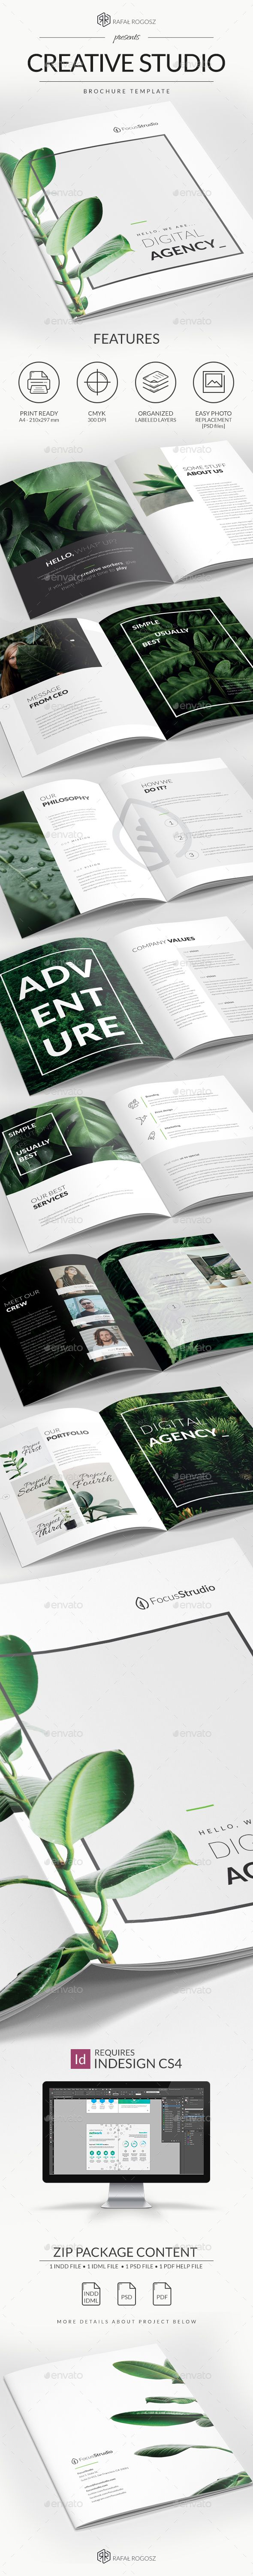 Creative Studio Brochure A  Creative Studio Brochures And Print